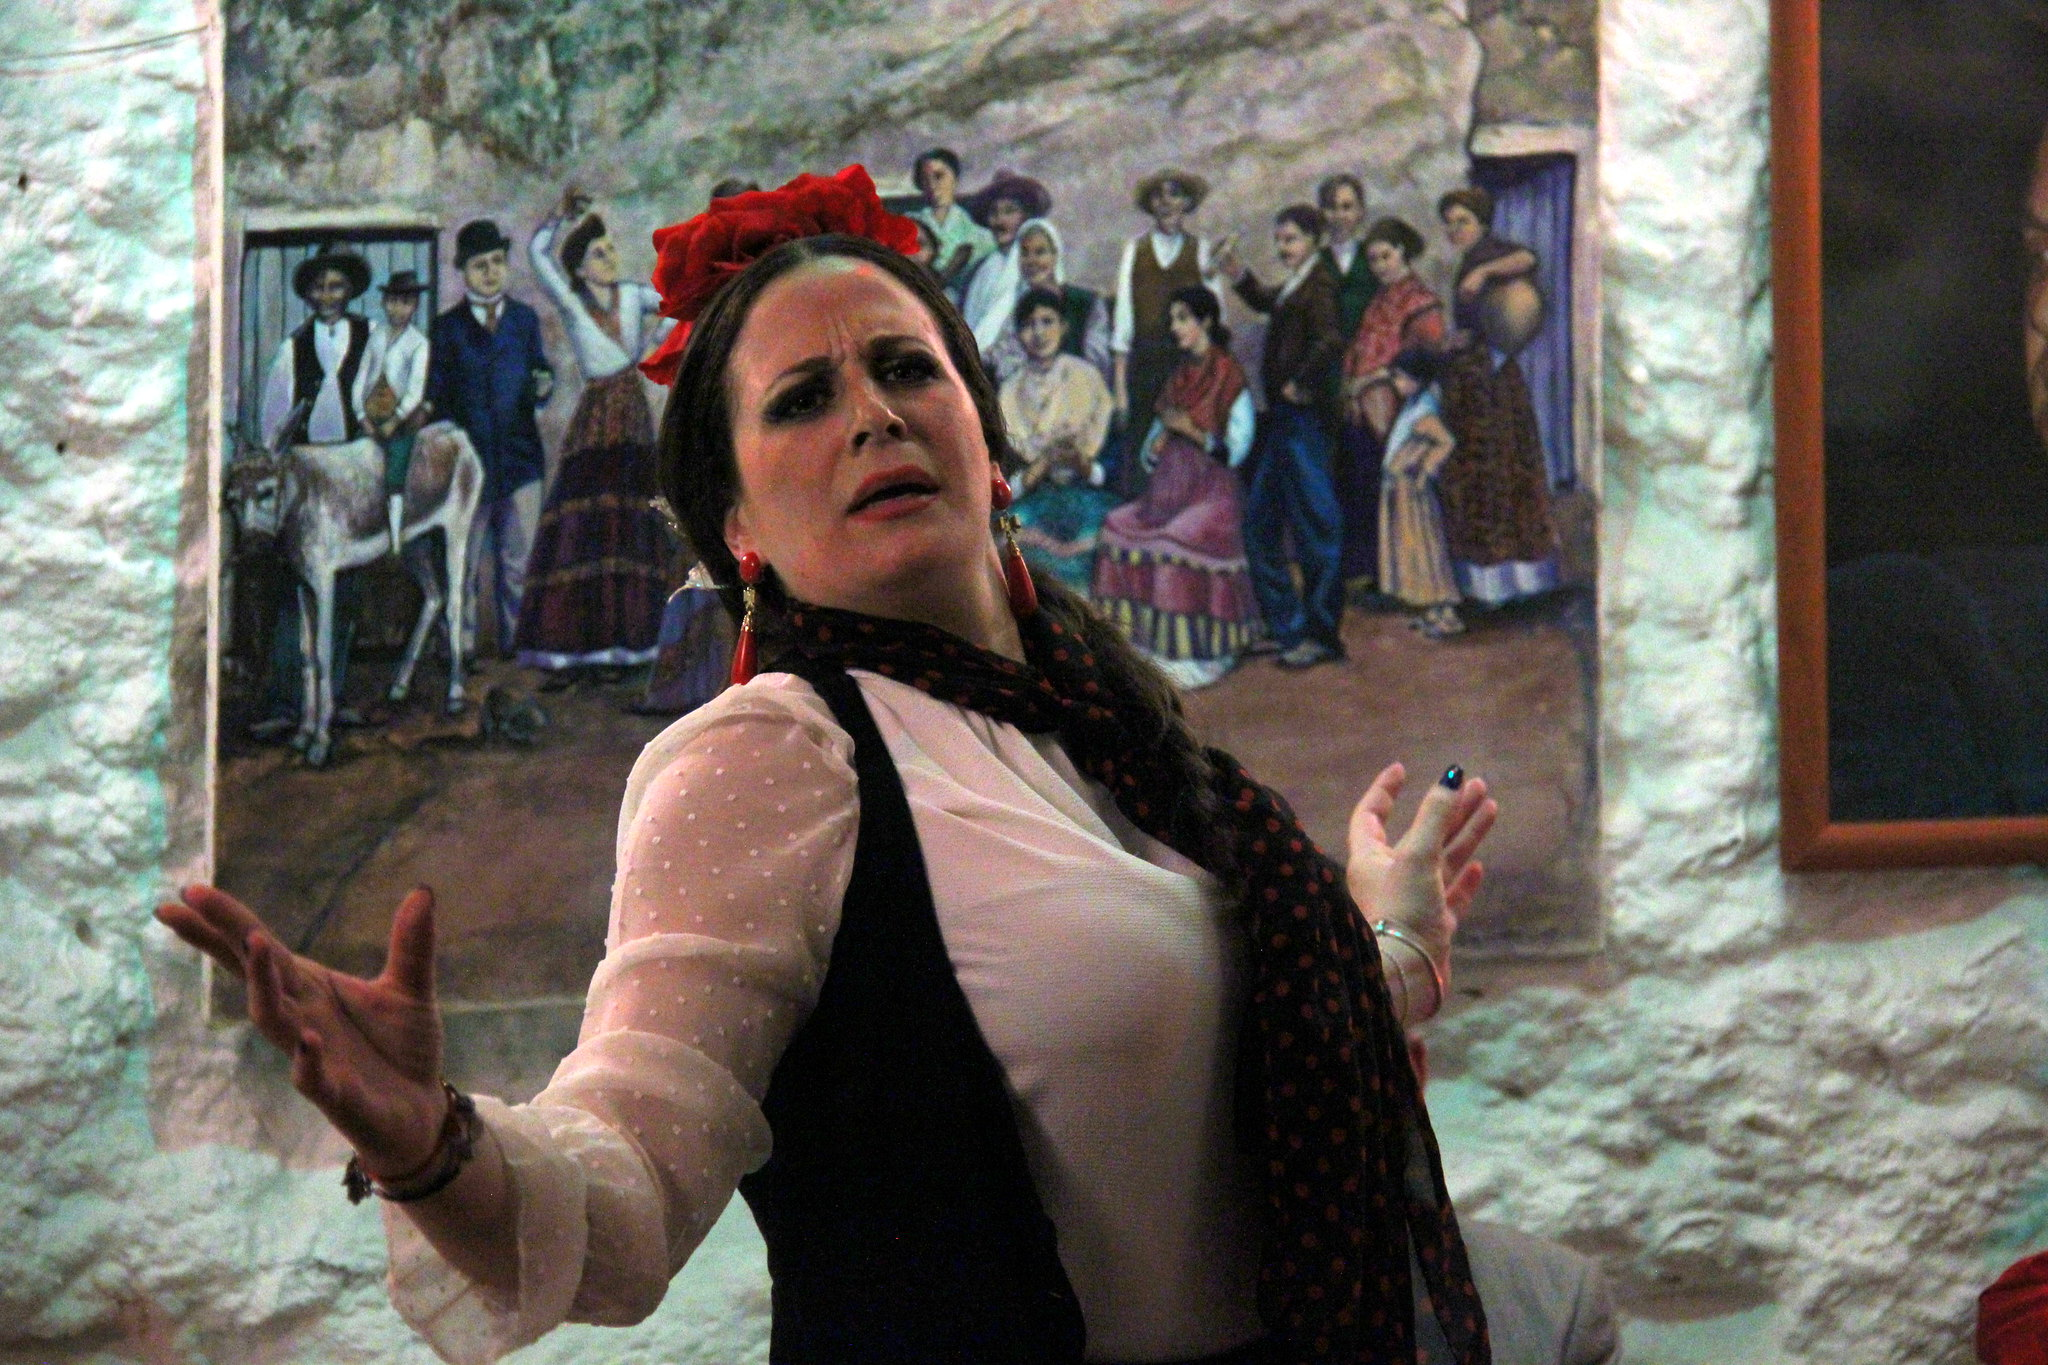 Cave flamenco show at Albaicin in Granada